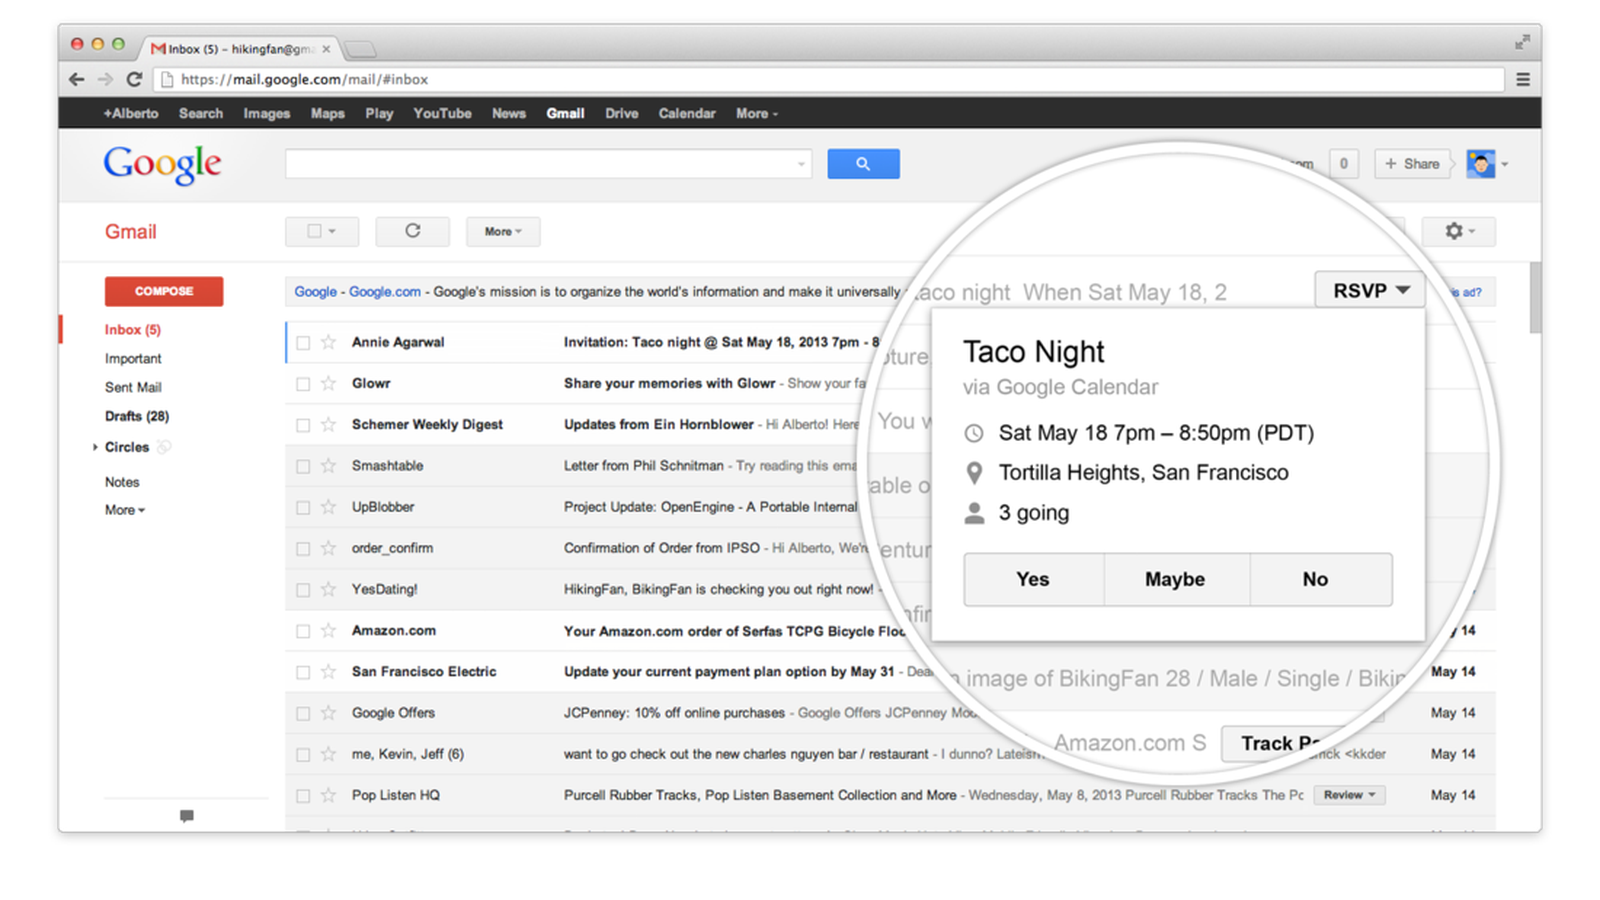 gmail u0026 39 s new quick action buttons let you complete tasks